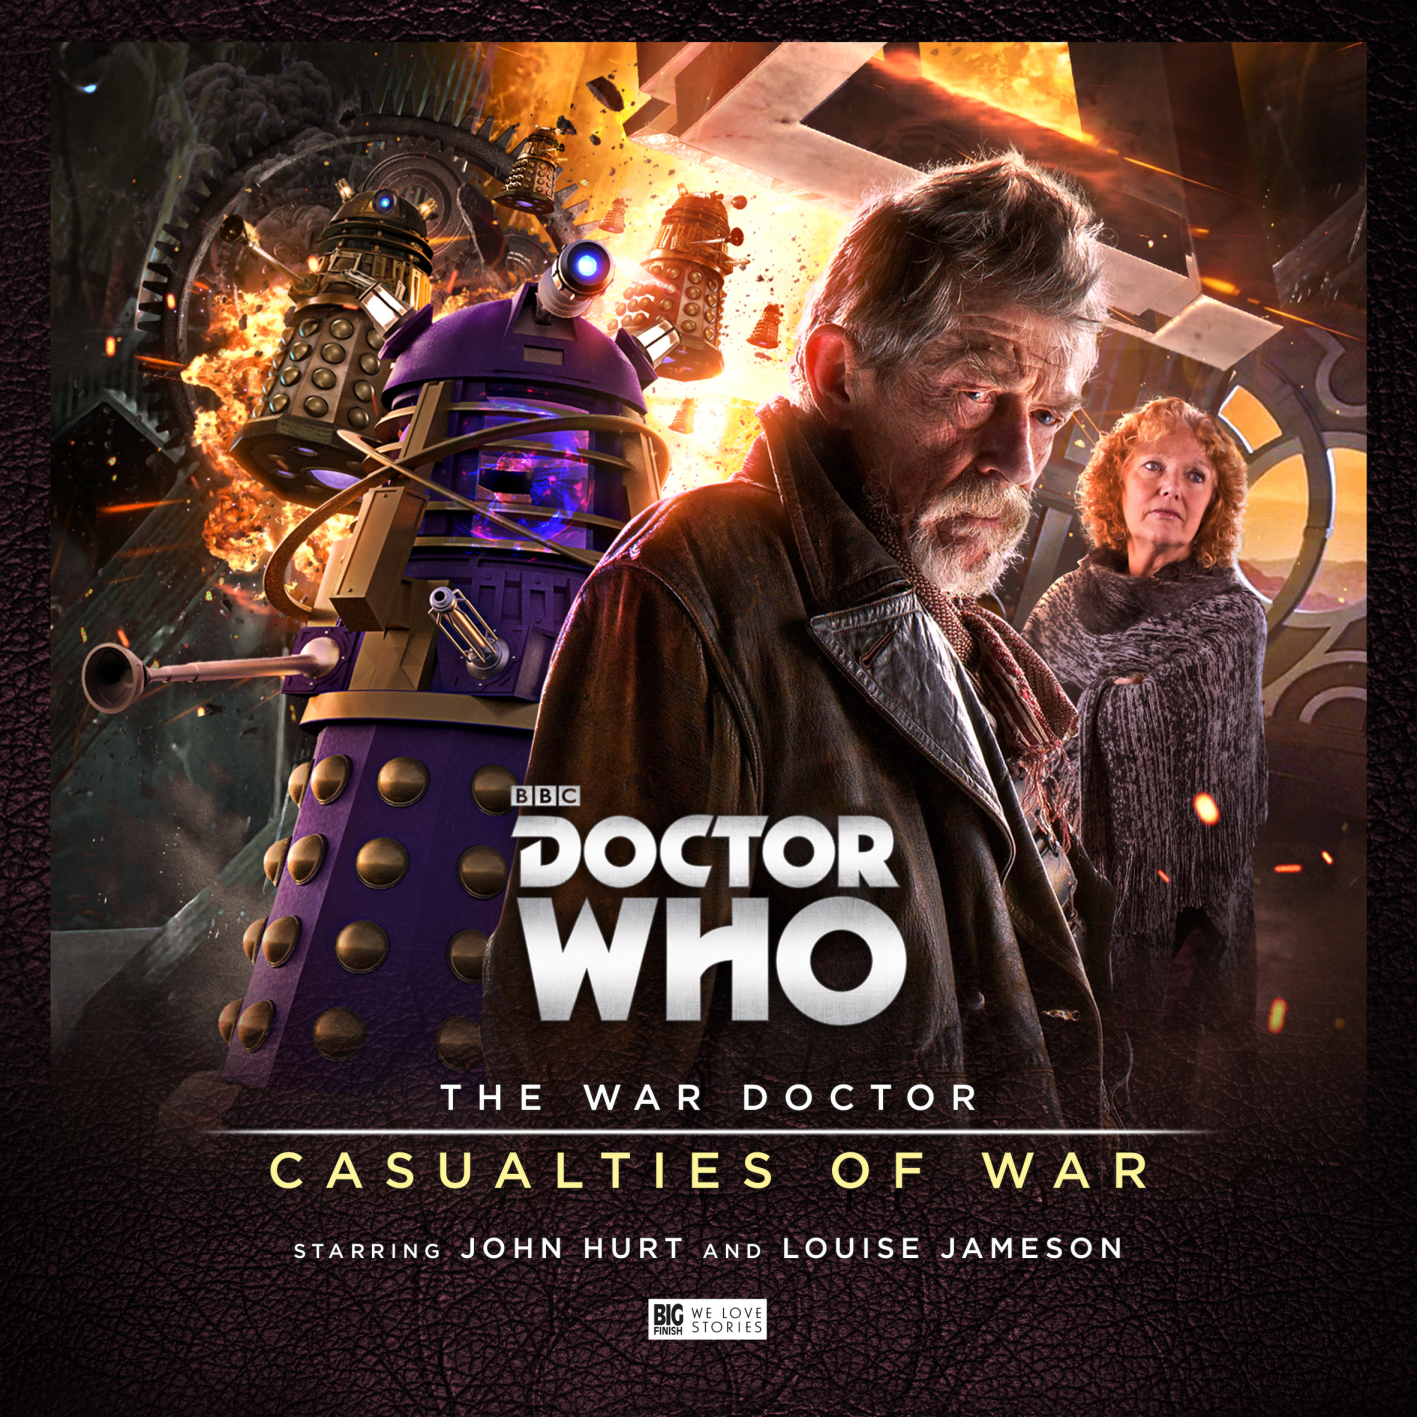 THE WAR DOCTOR: CASUALTIES OF WAR